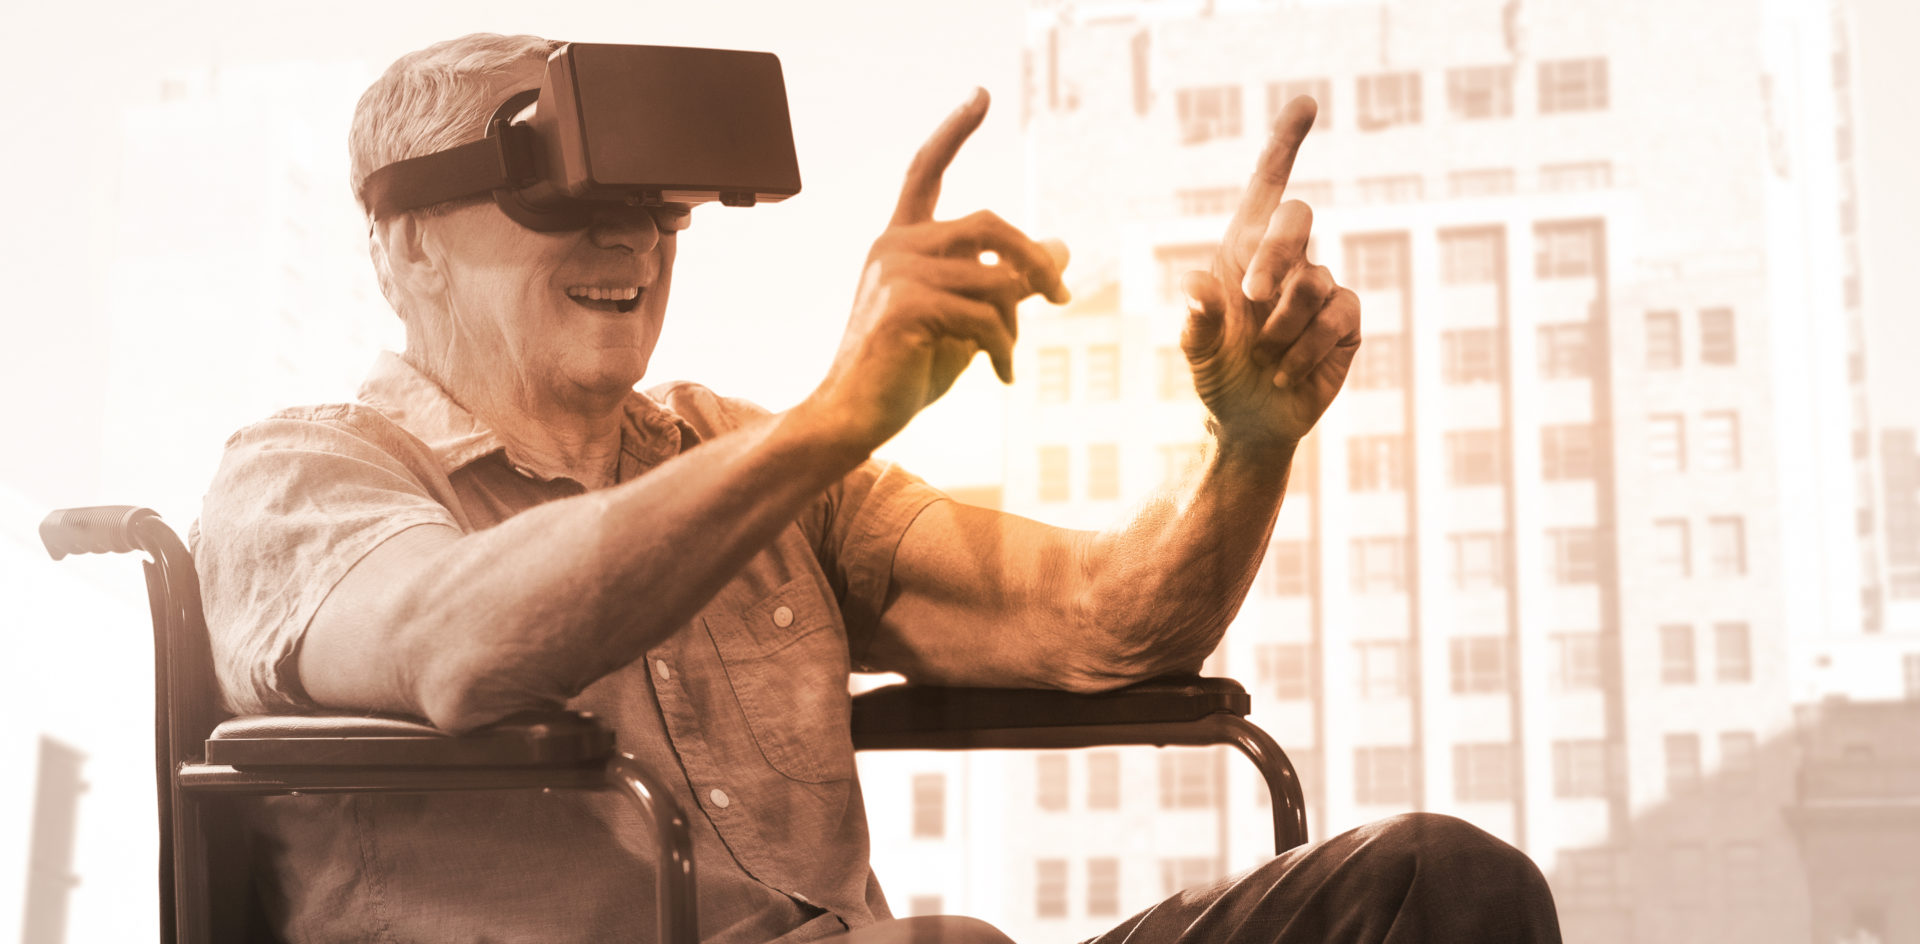 Virtual reality may help ease severe pain, study shows